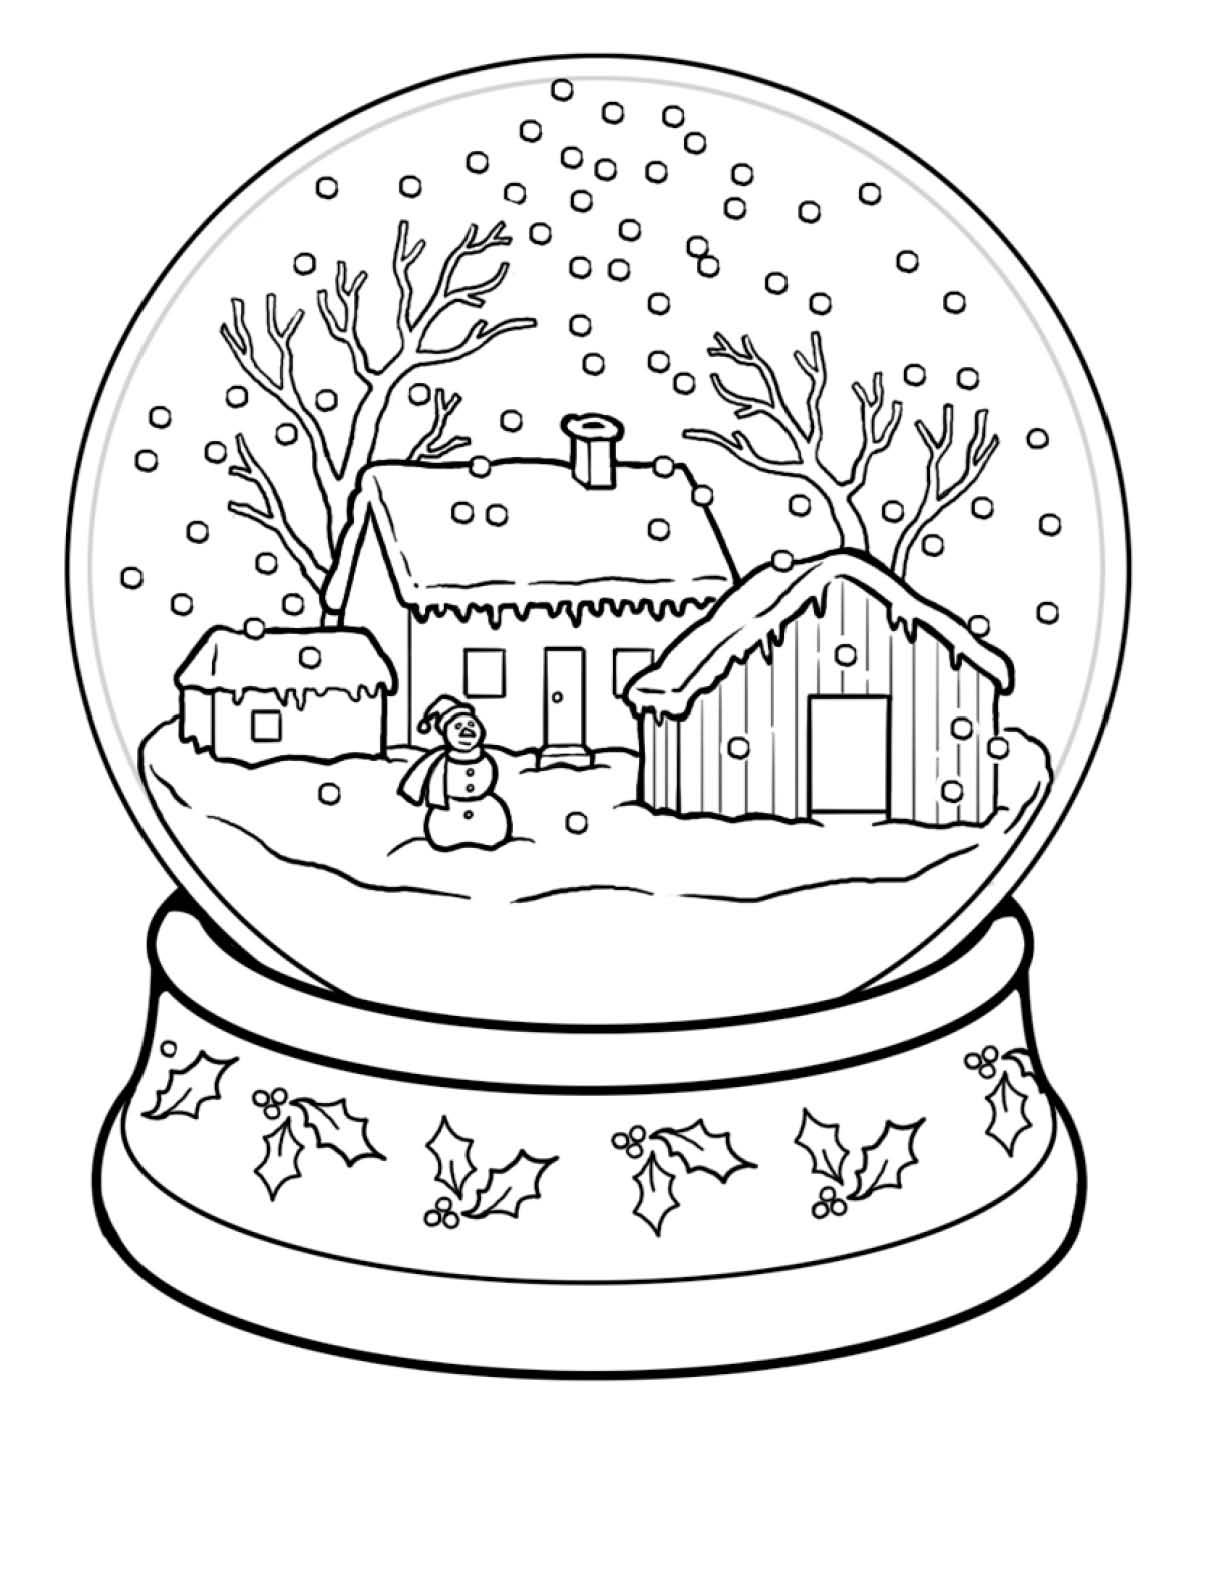 winter scene coloring pages Winter coloring pages snow globe   ColoringStar | Trees for Heroes  winter scene coloring pages